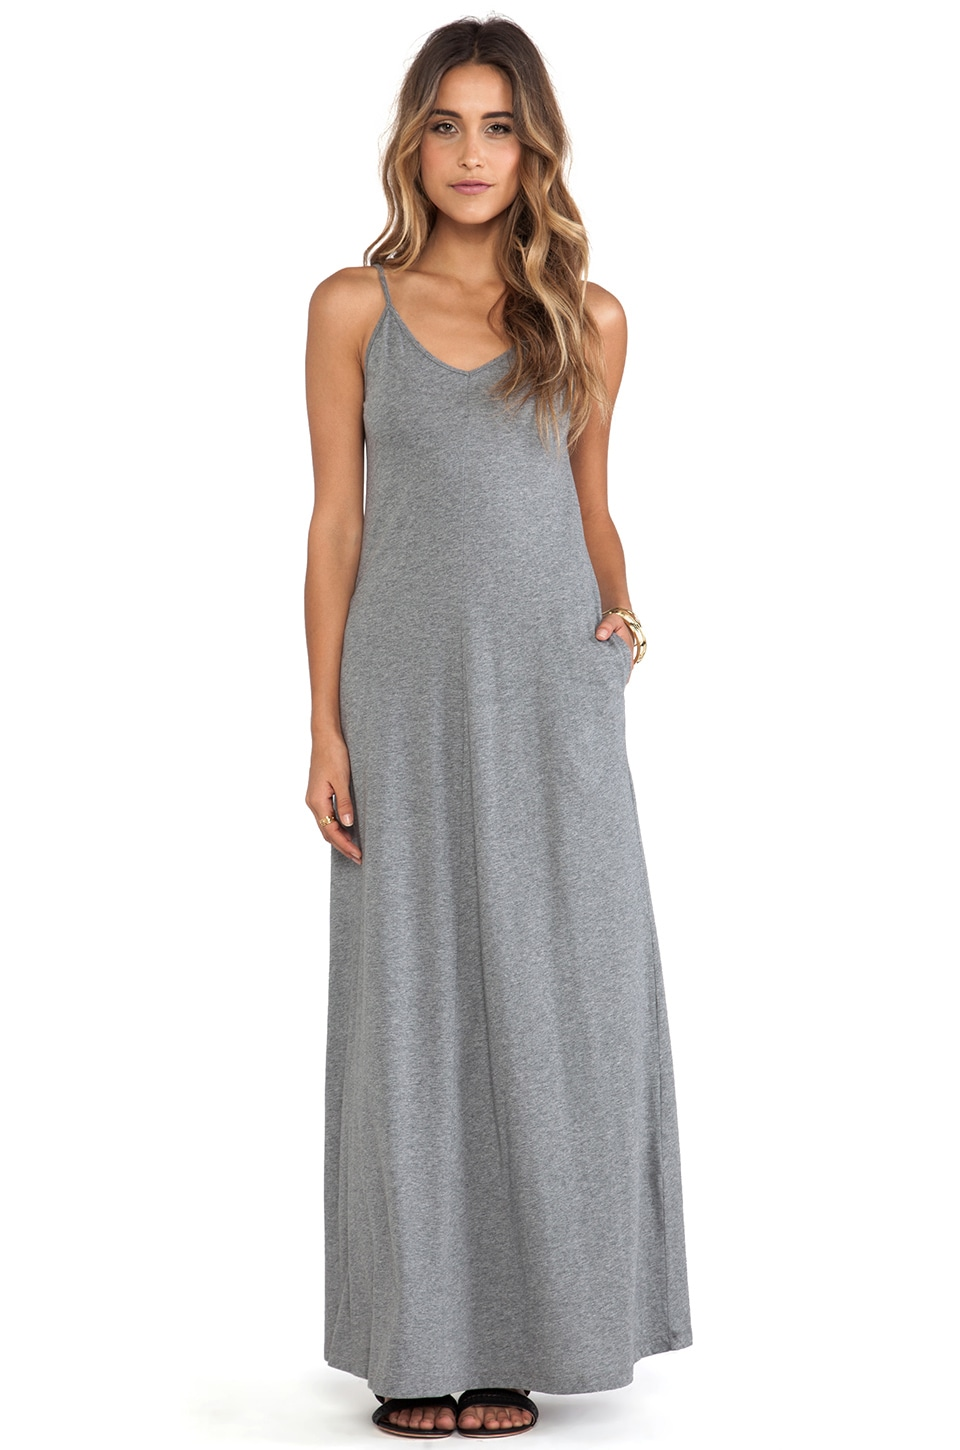 DemyLee Annabelle Maxi Dress in Dark Heather Grey